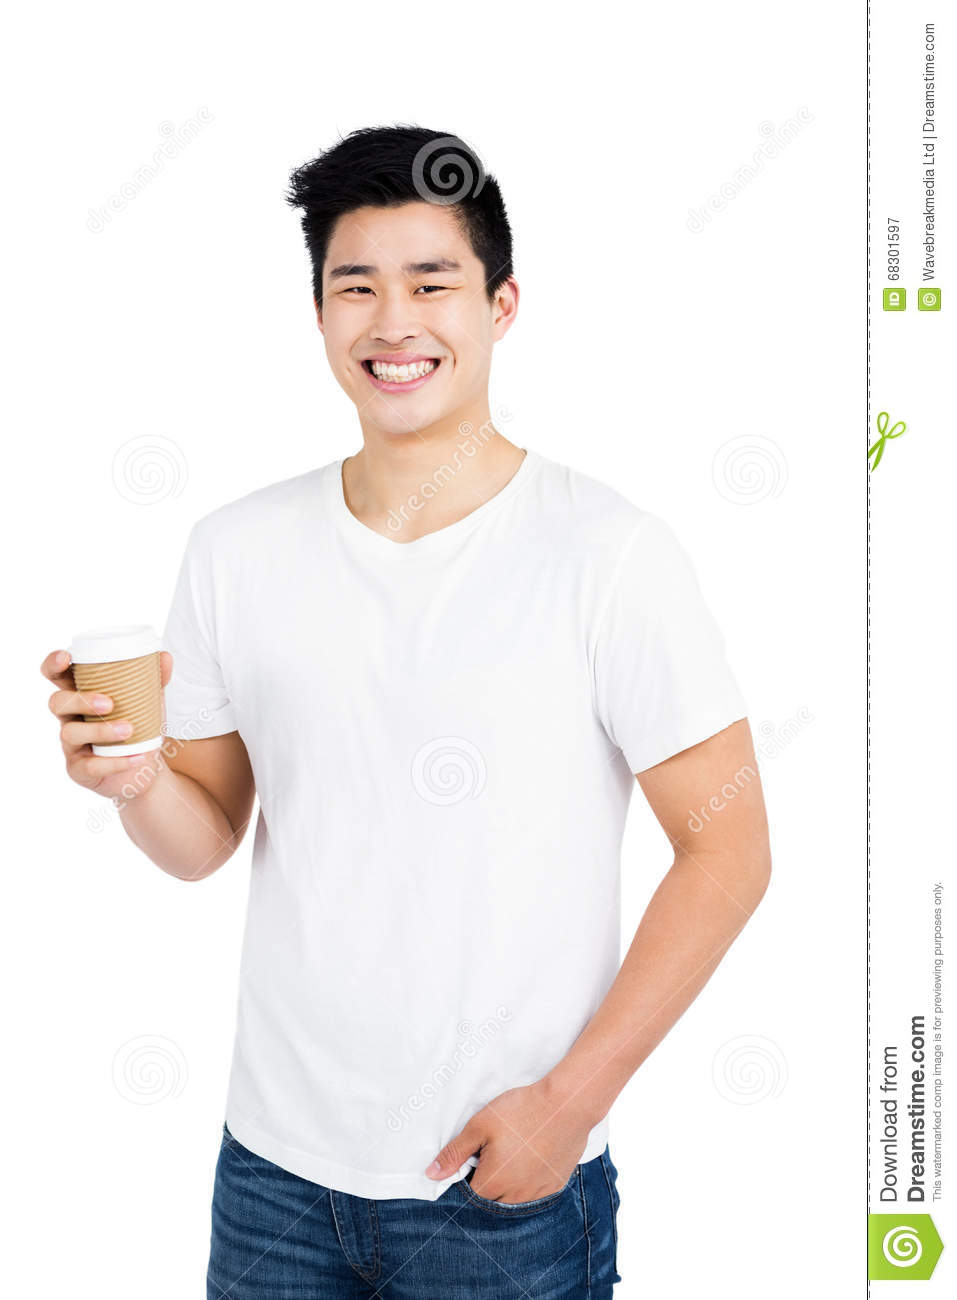 happy-man-holding-disposable-coffee-cup-